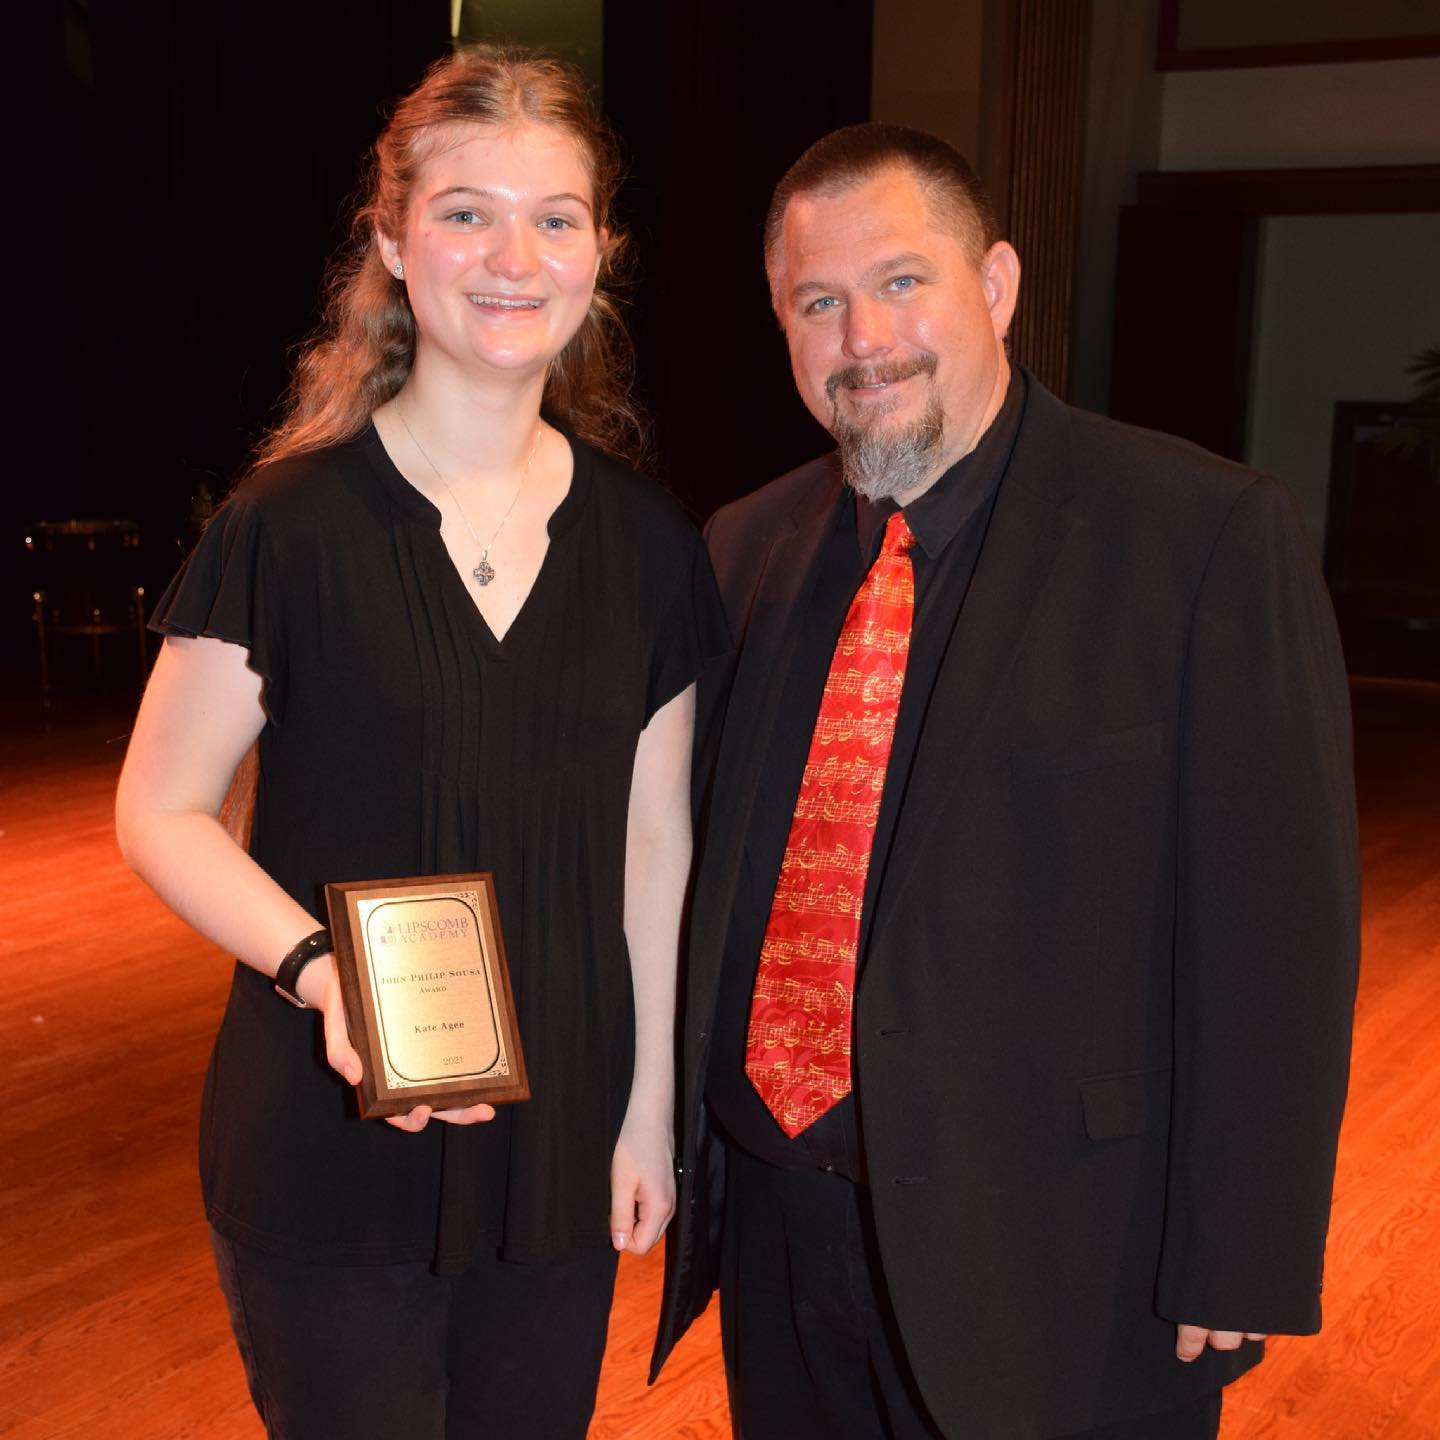 Congrats to @kateagee on being selected as the John Philip Sousa Award winner for the @lipscombacademy High School Band. This is quite an honor and we are SUPER proud of her!!! #highschoolband #music #flute #family